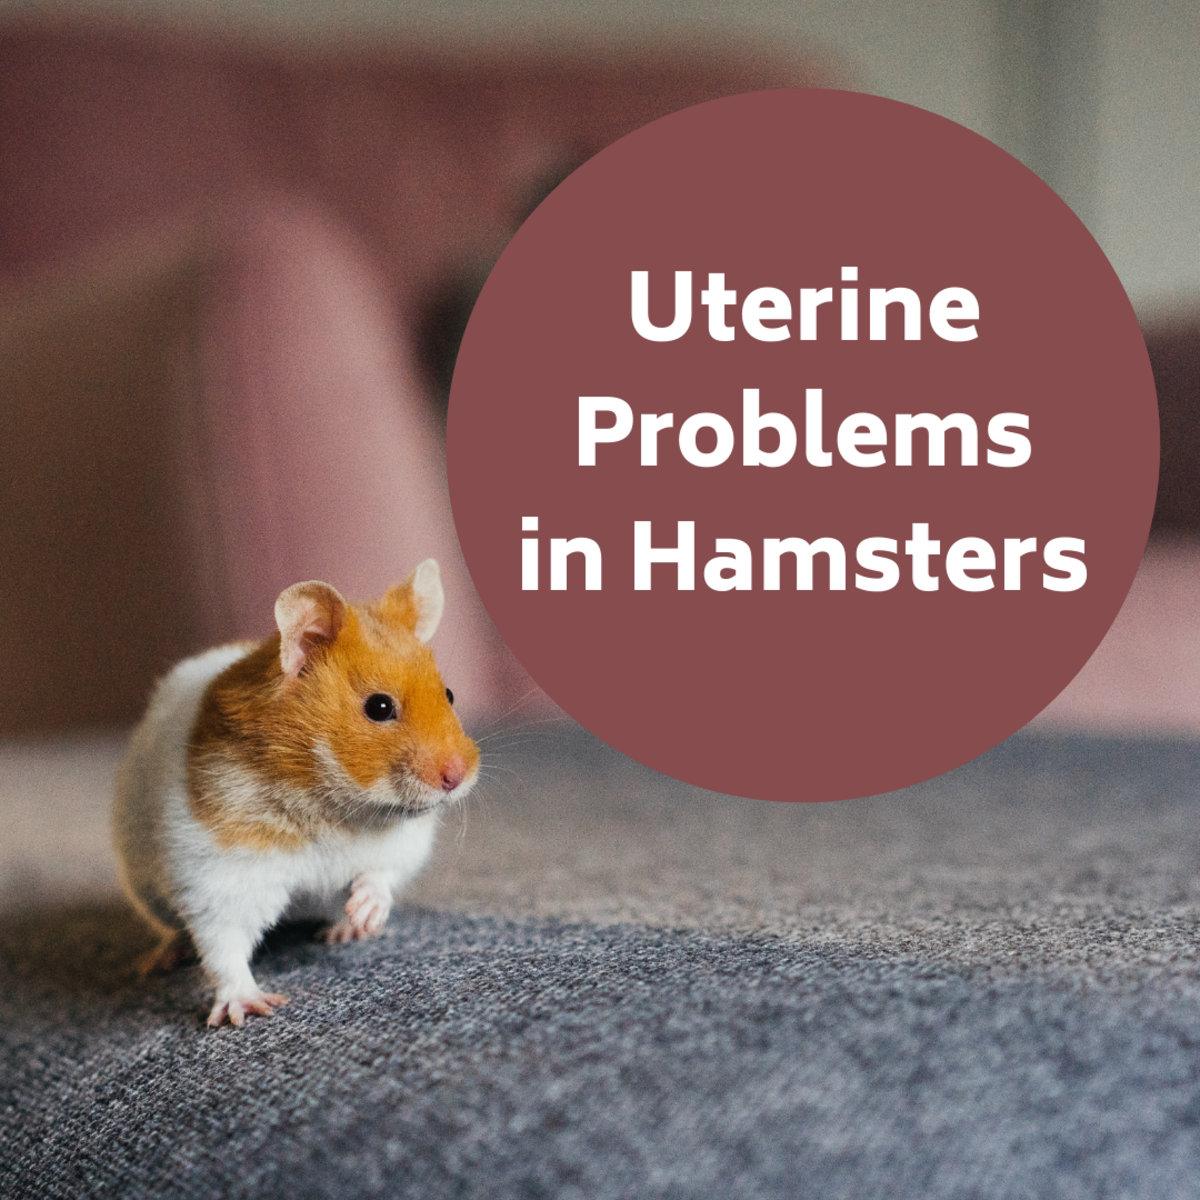 Uterine Problems in Hamsters: Signs, Symptoms and Treatment